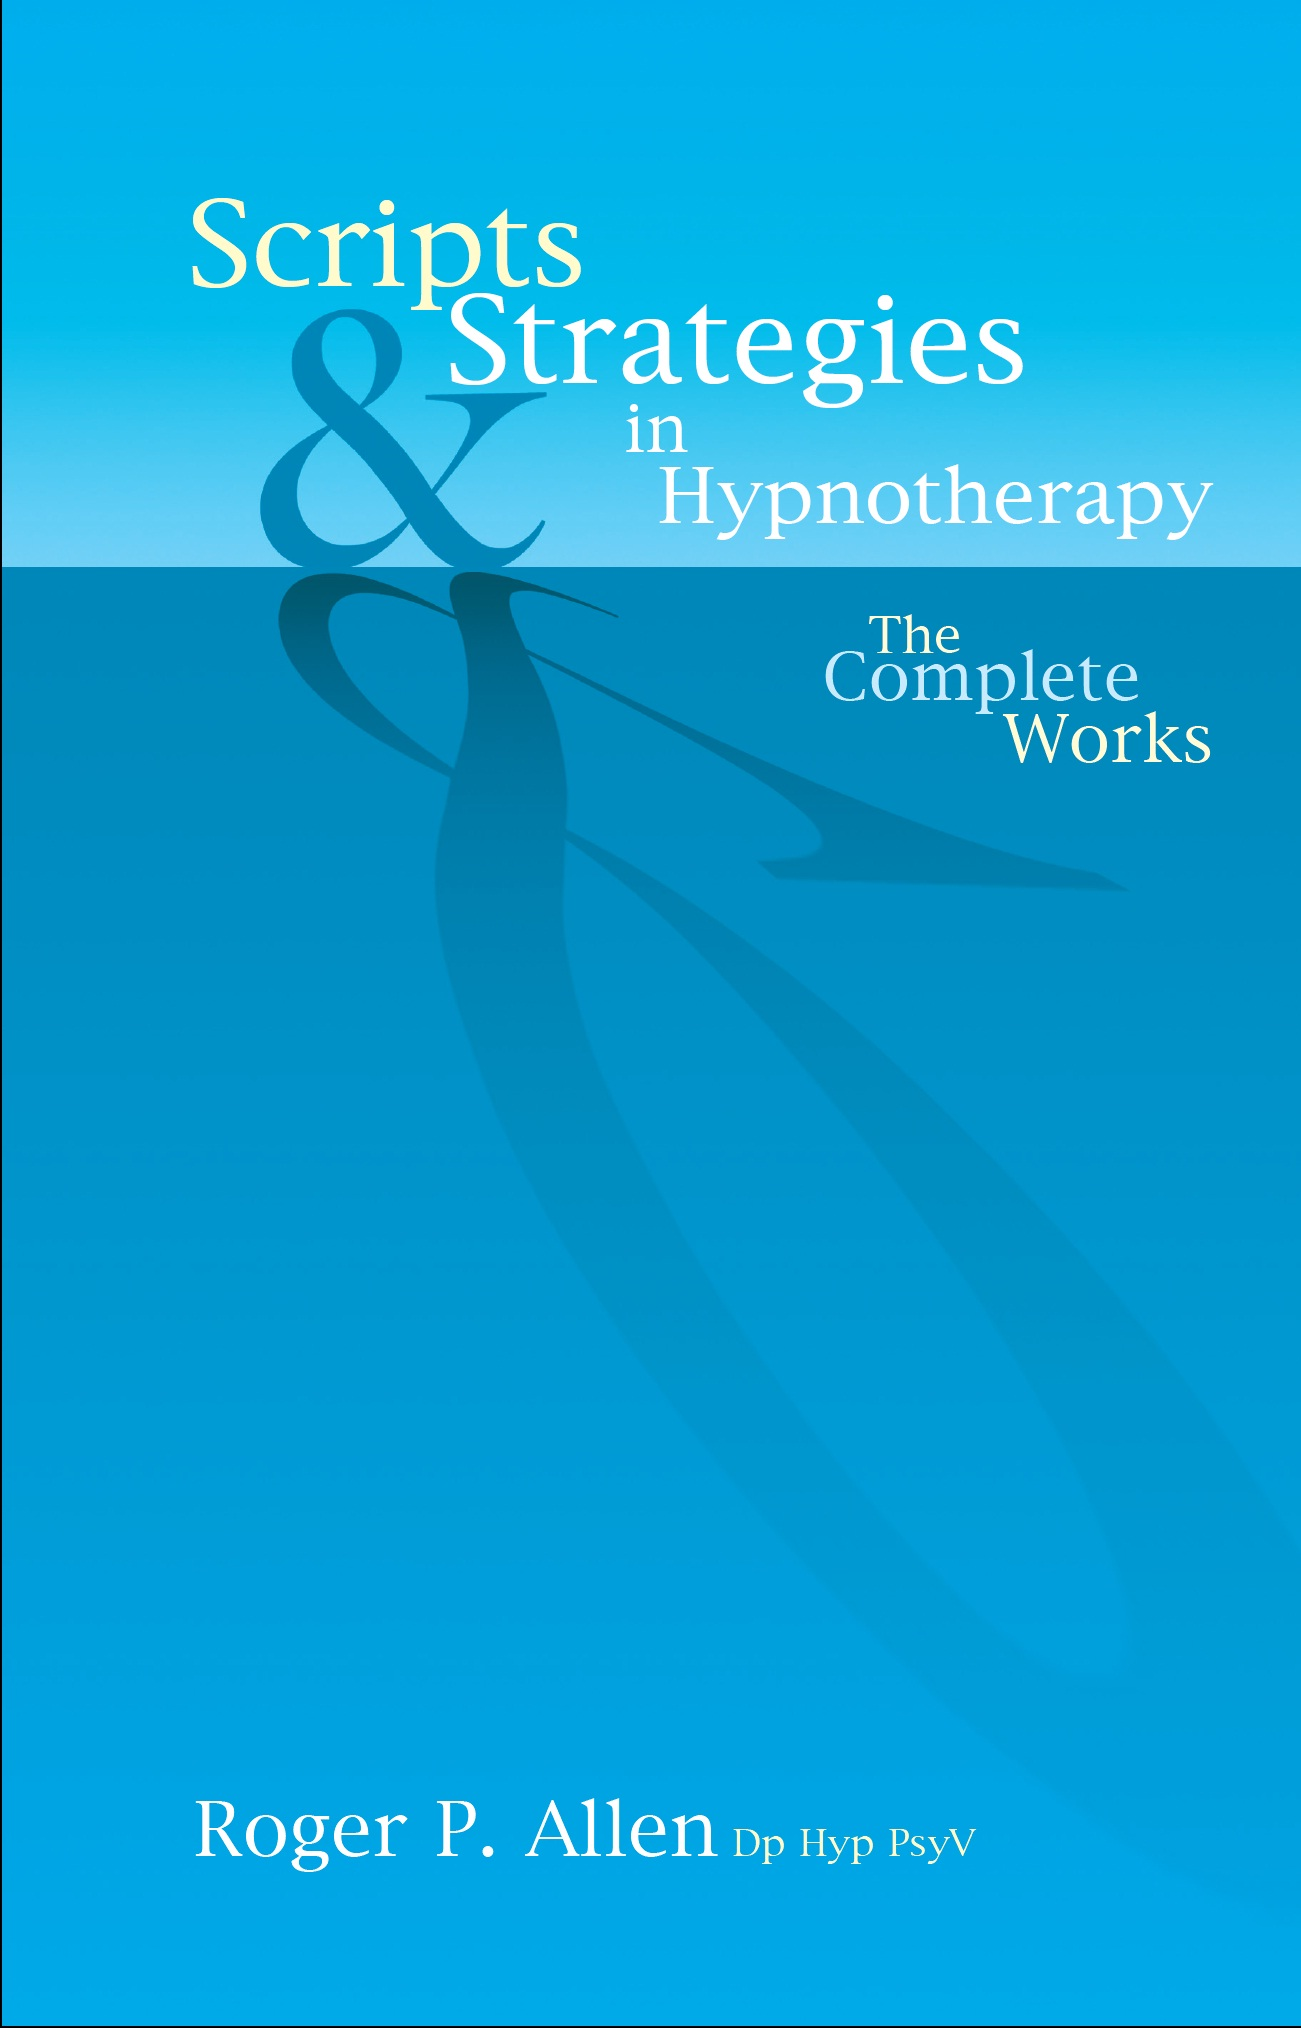 Scripts & Strategies in Hypnotherapy By: Roger P. Allen